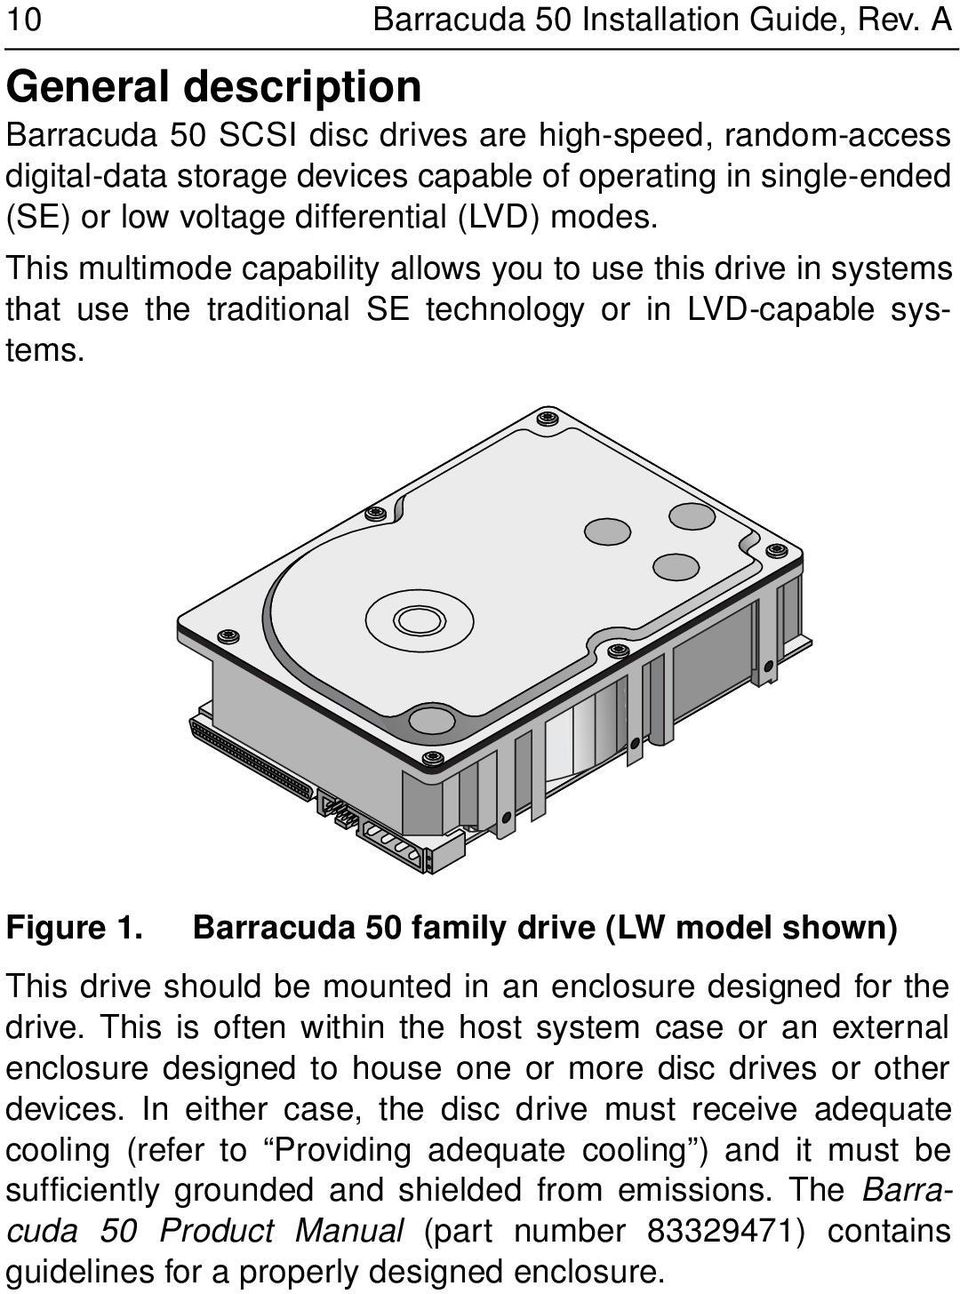 Barracuda 50 Disc Drive St150176lw Lc Installation Guide Pdf Hard Diagram Disk Mounting This Multimode Capability Allows You To Use In Systems That The Traditional Se 13